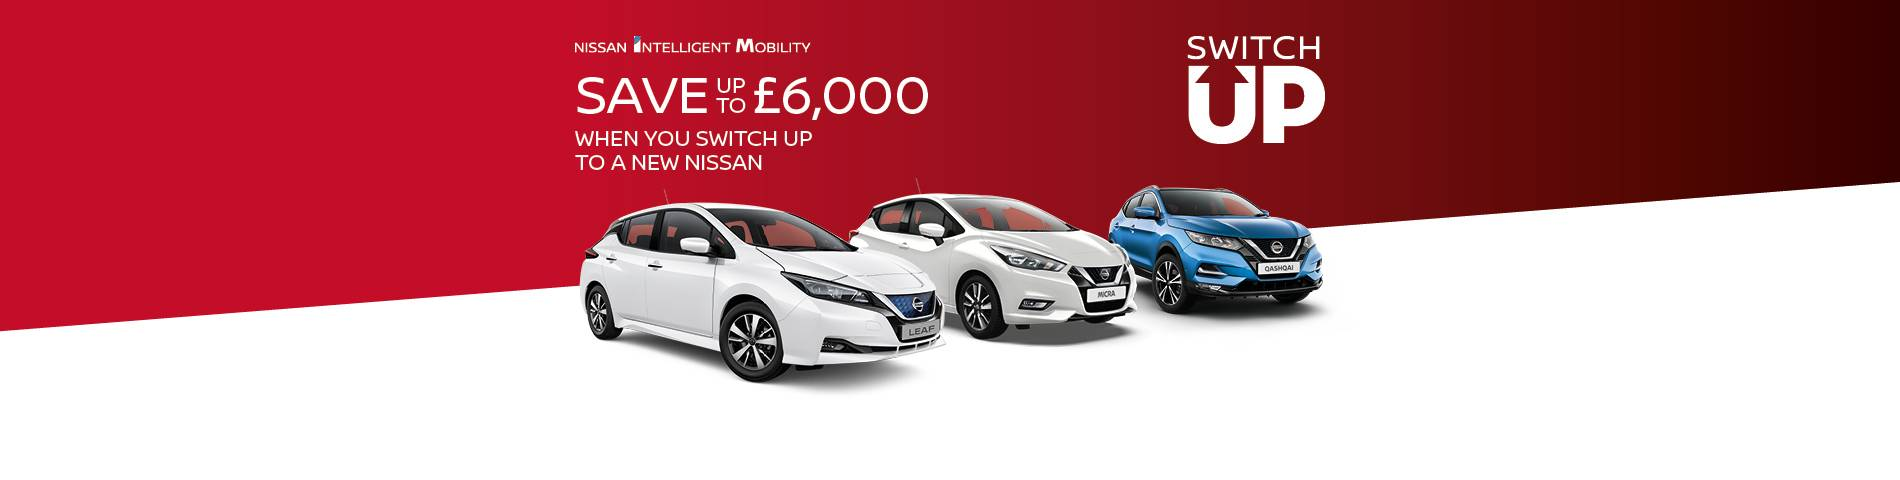 Nissan Switch Up Homepage